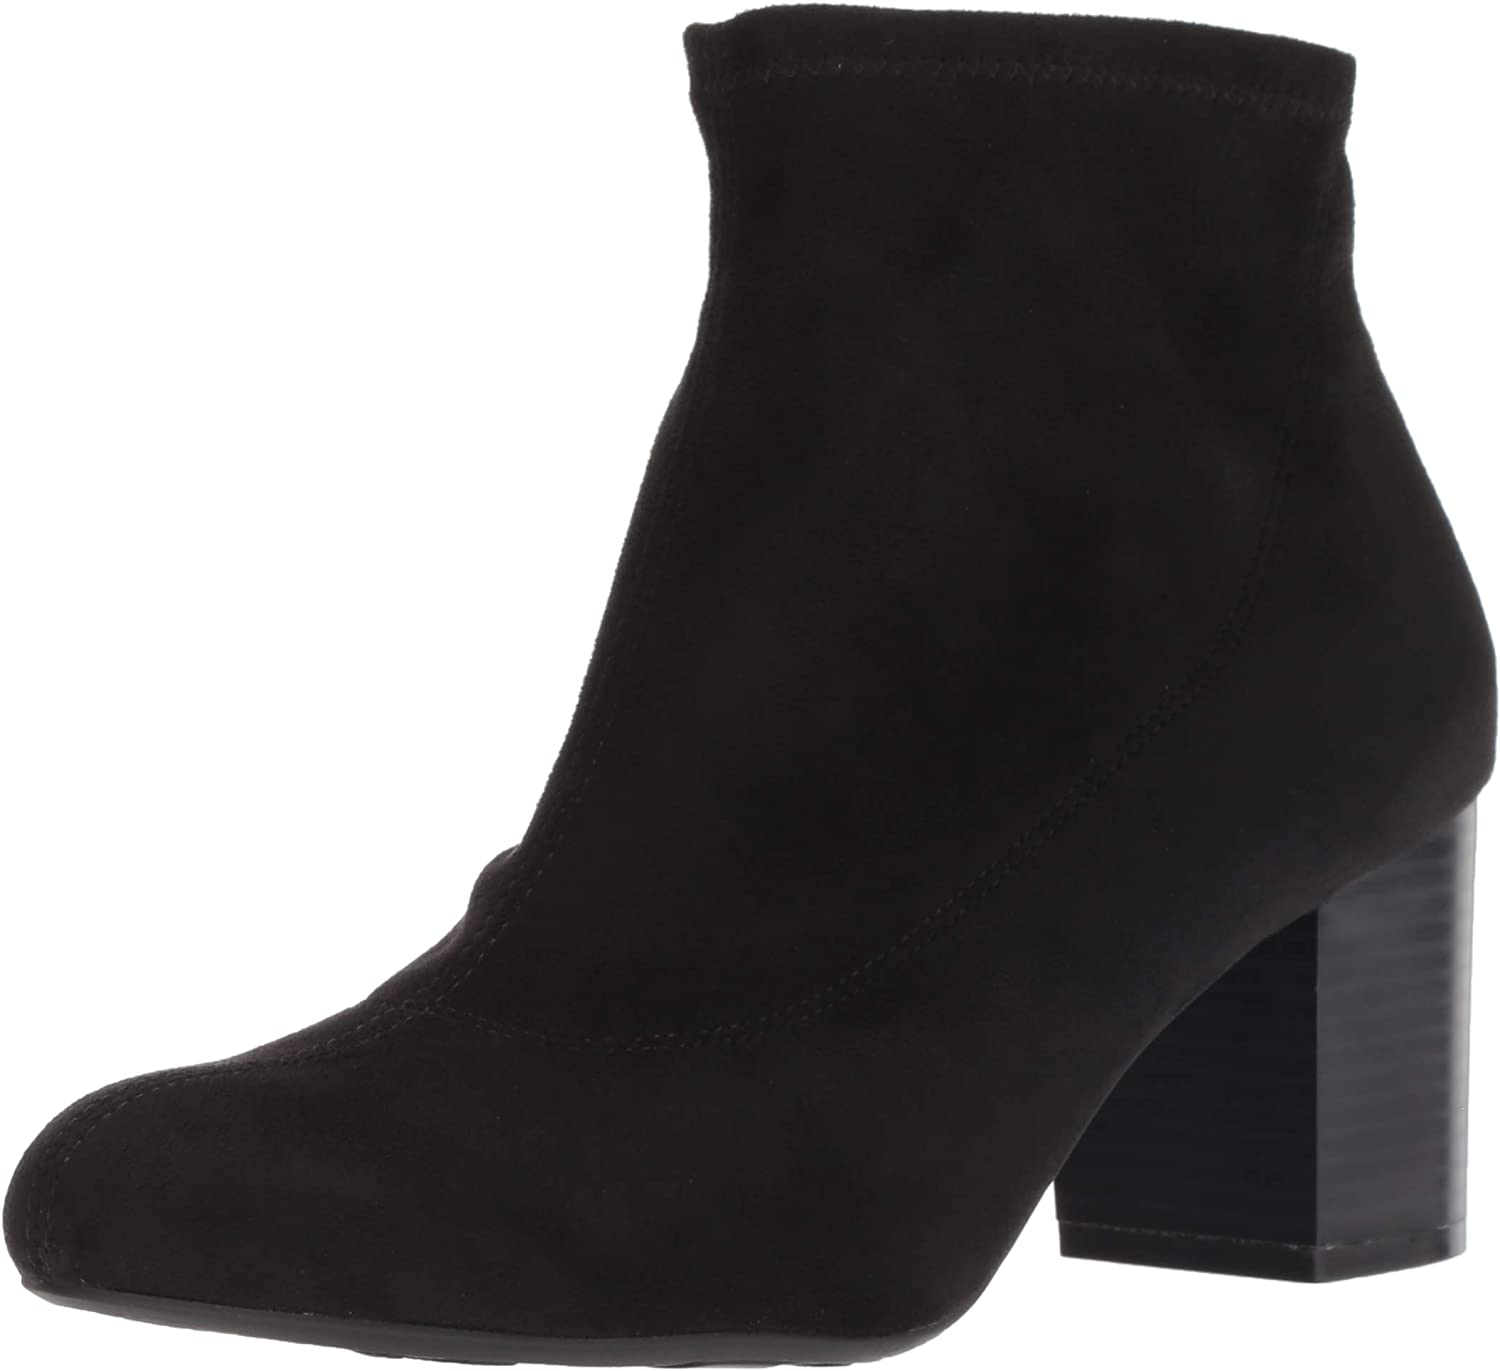 LifeStride Women's Max 41% Factory outlet OFF Peaches Ankle Boot